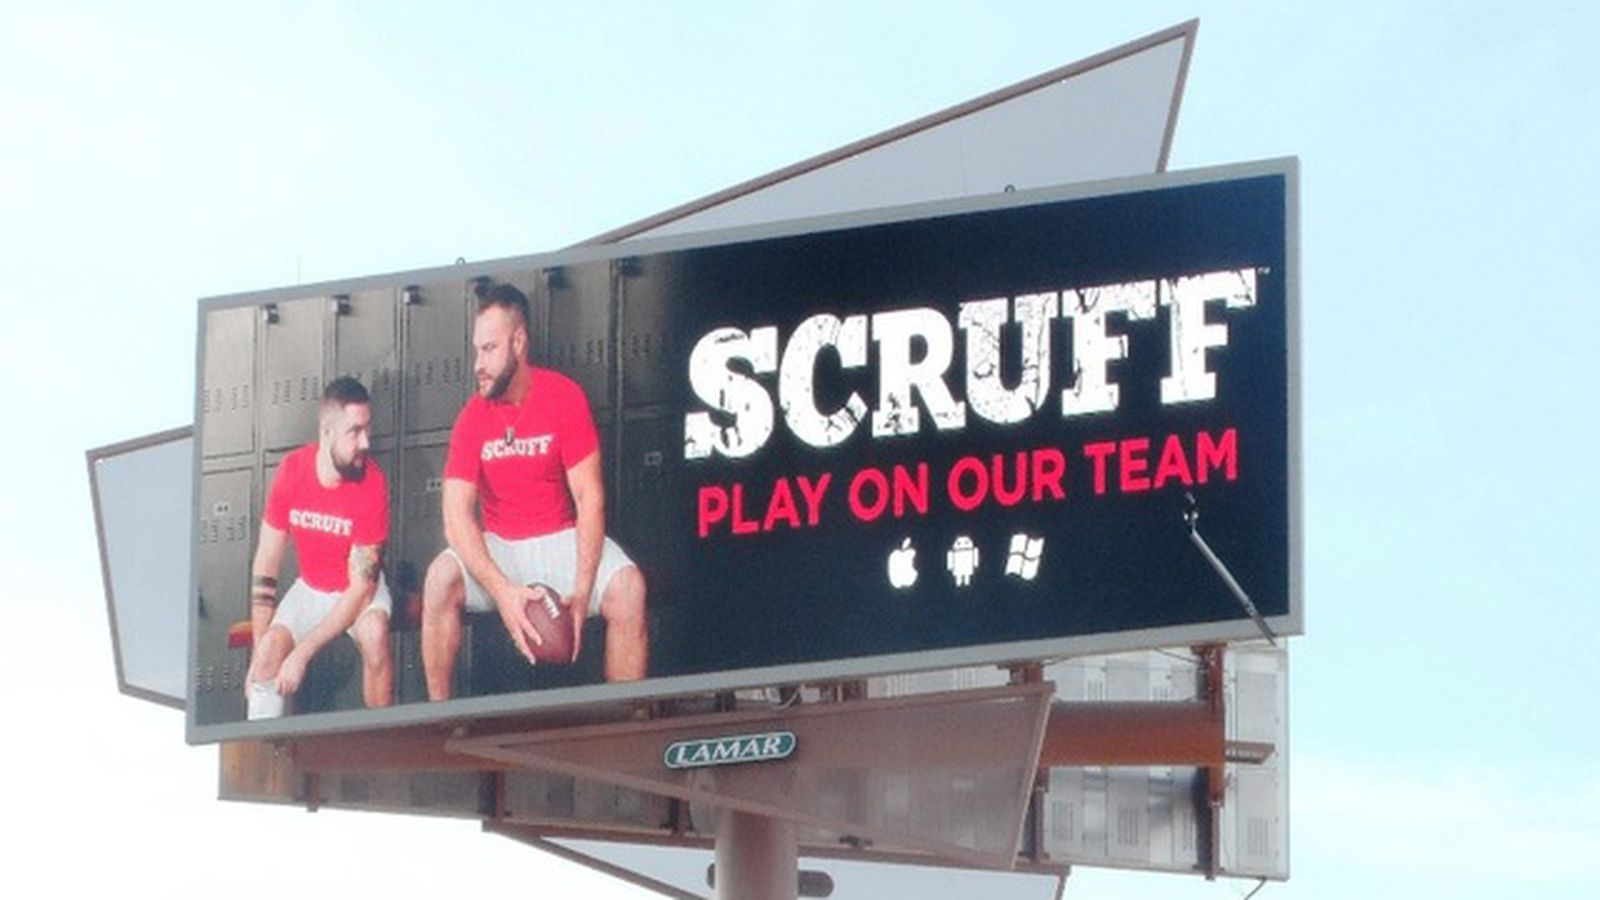 Online dating sites scruff